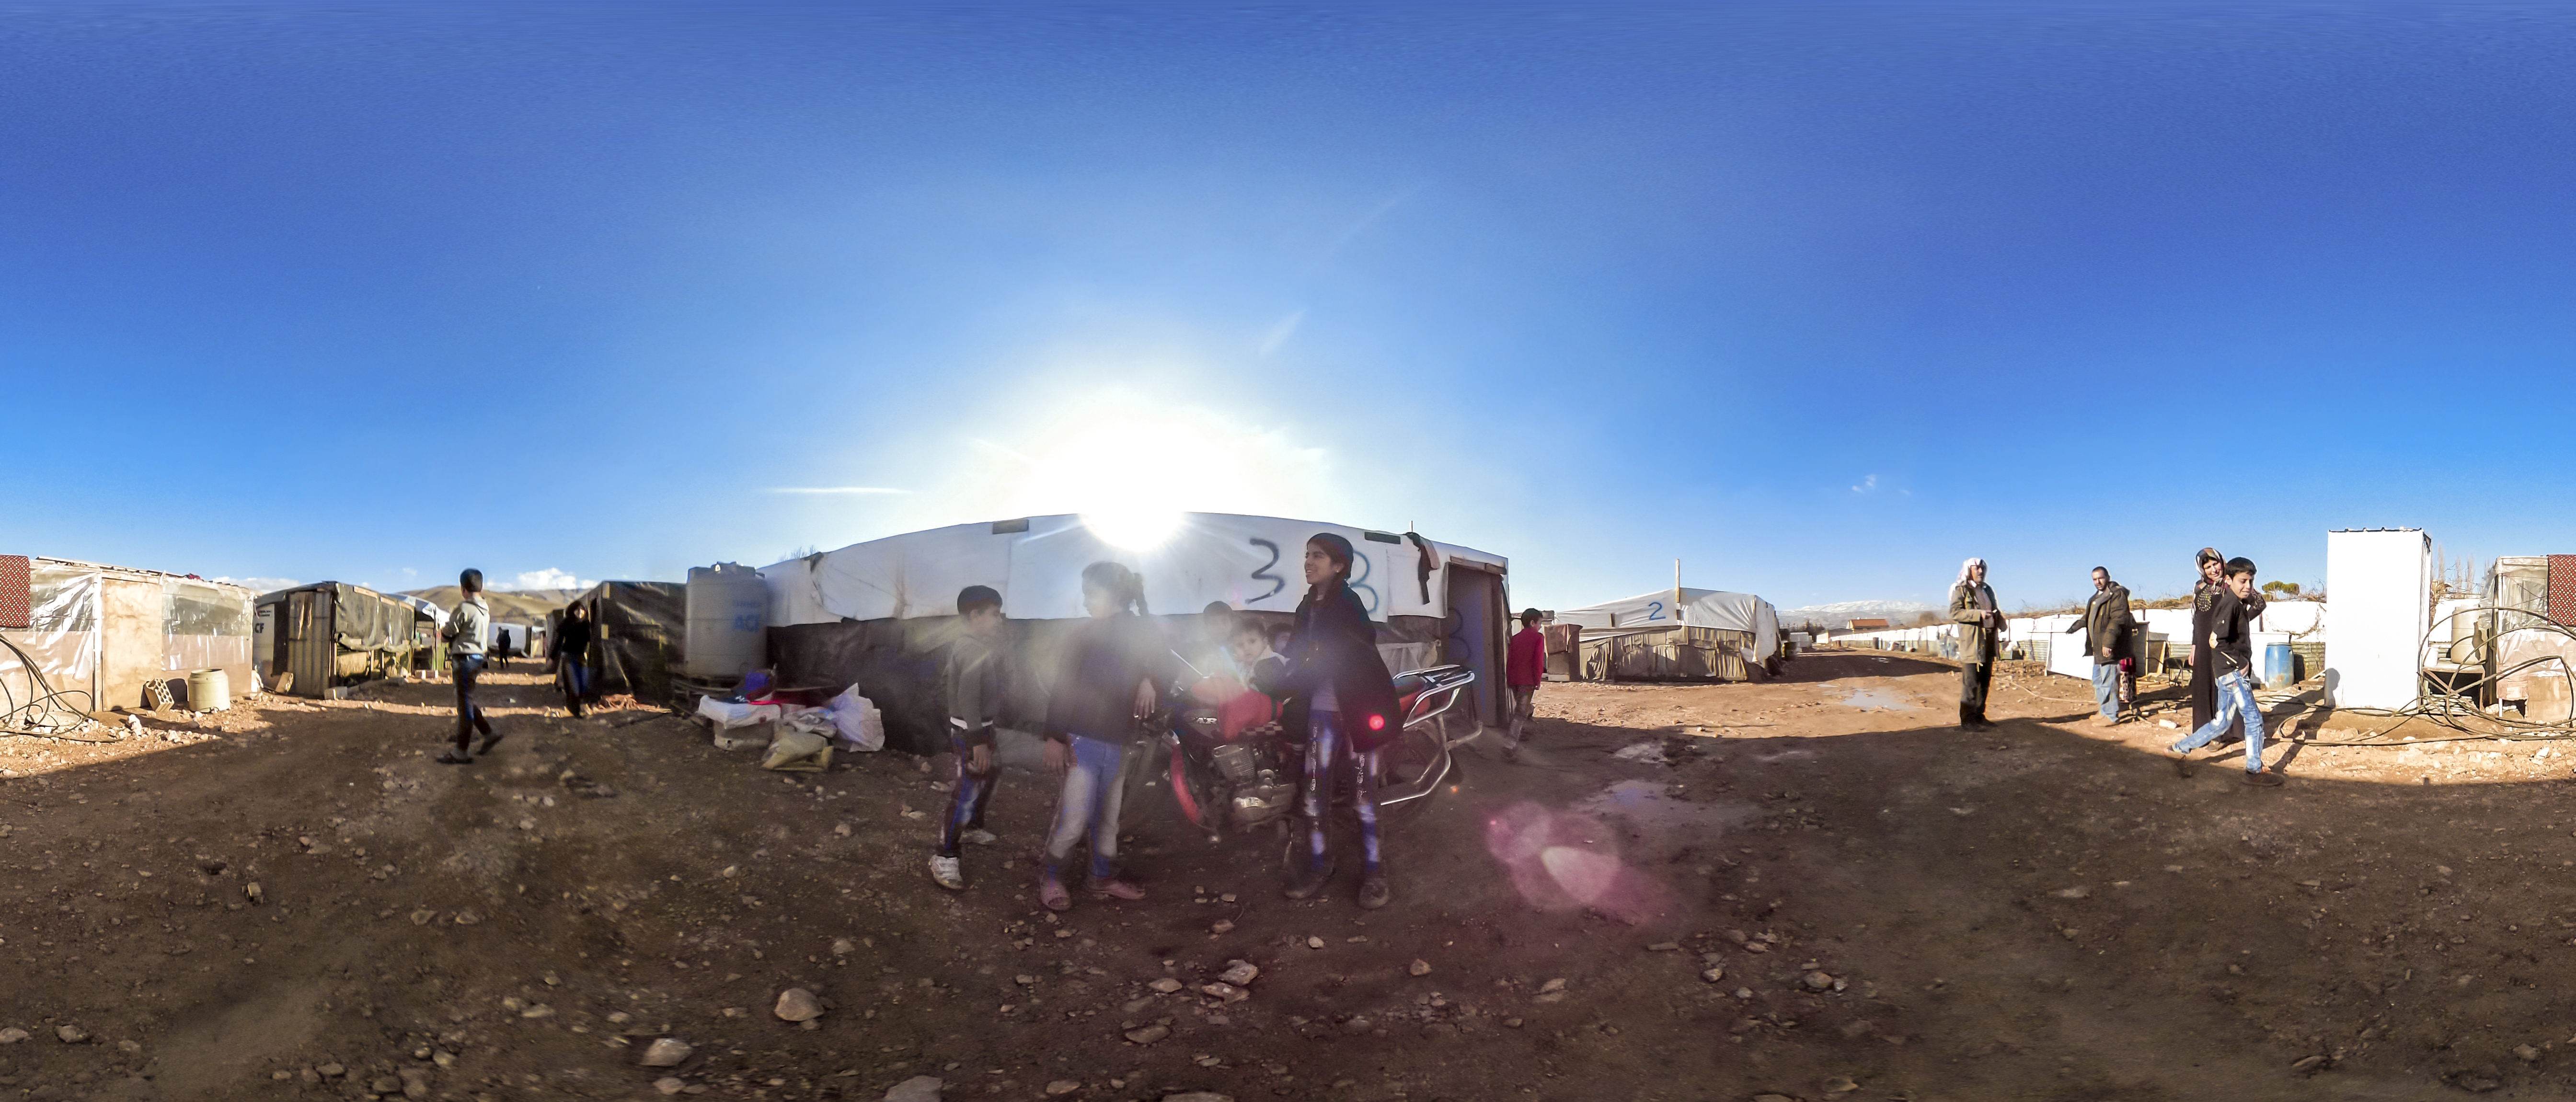 A group of children play in front of a motorbike in a tented refugee camp in the Bekaa Valley, Lebanon. Several older people look on from the right. Tents and shacks are behind the motorbike. The sun shines brightly. The image has a fish-eye effect.